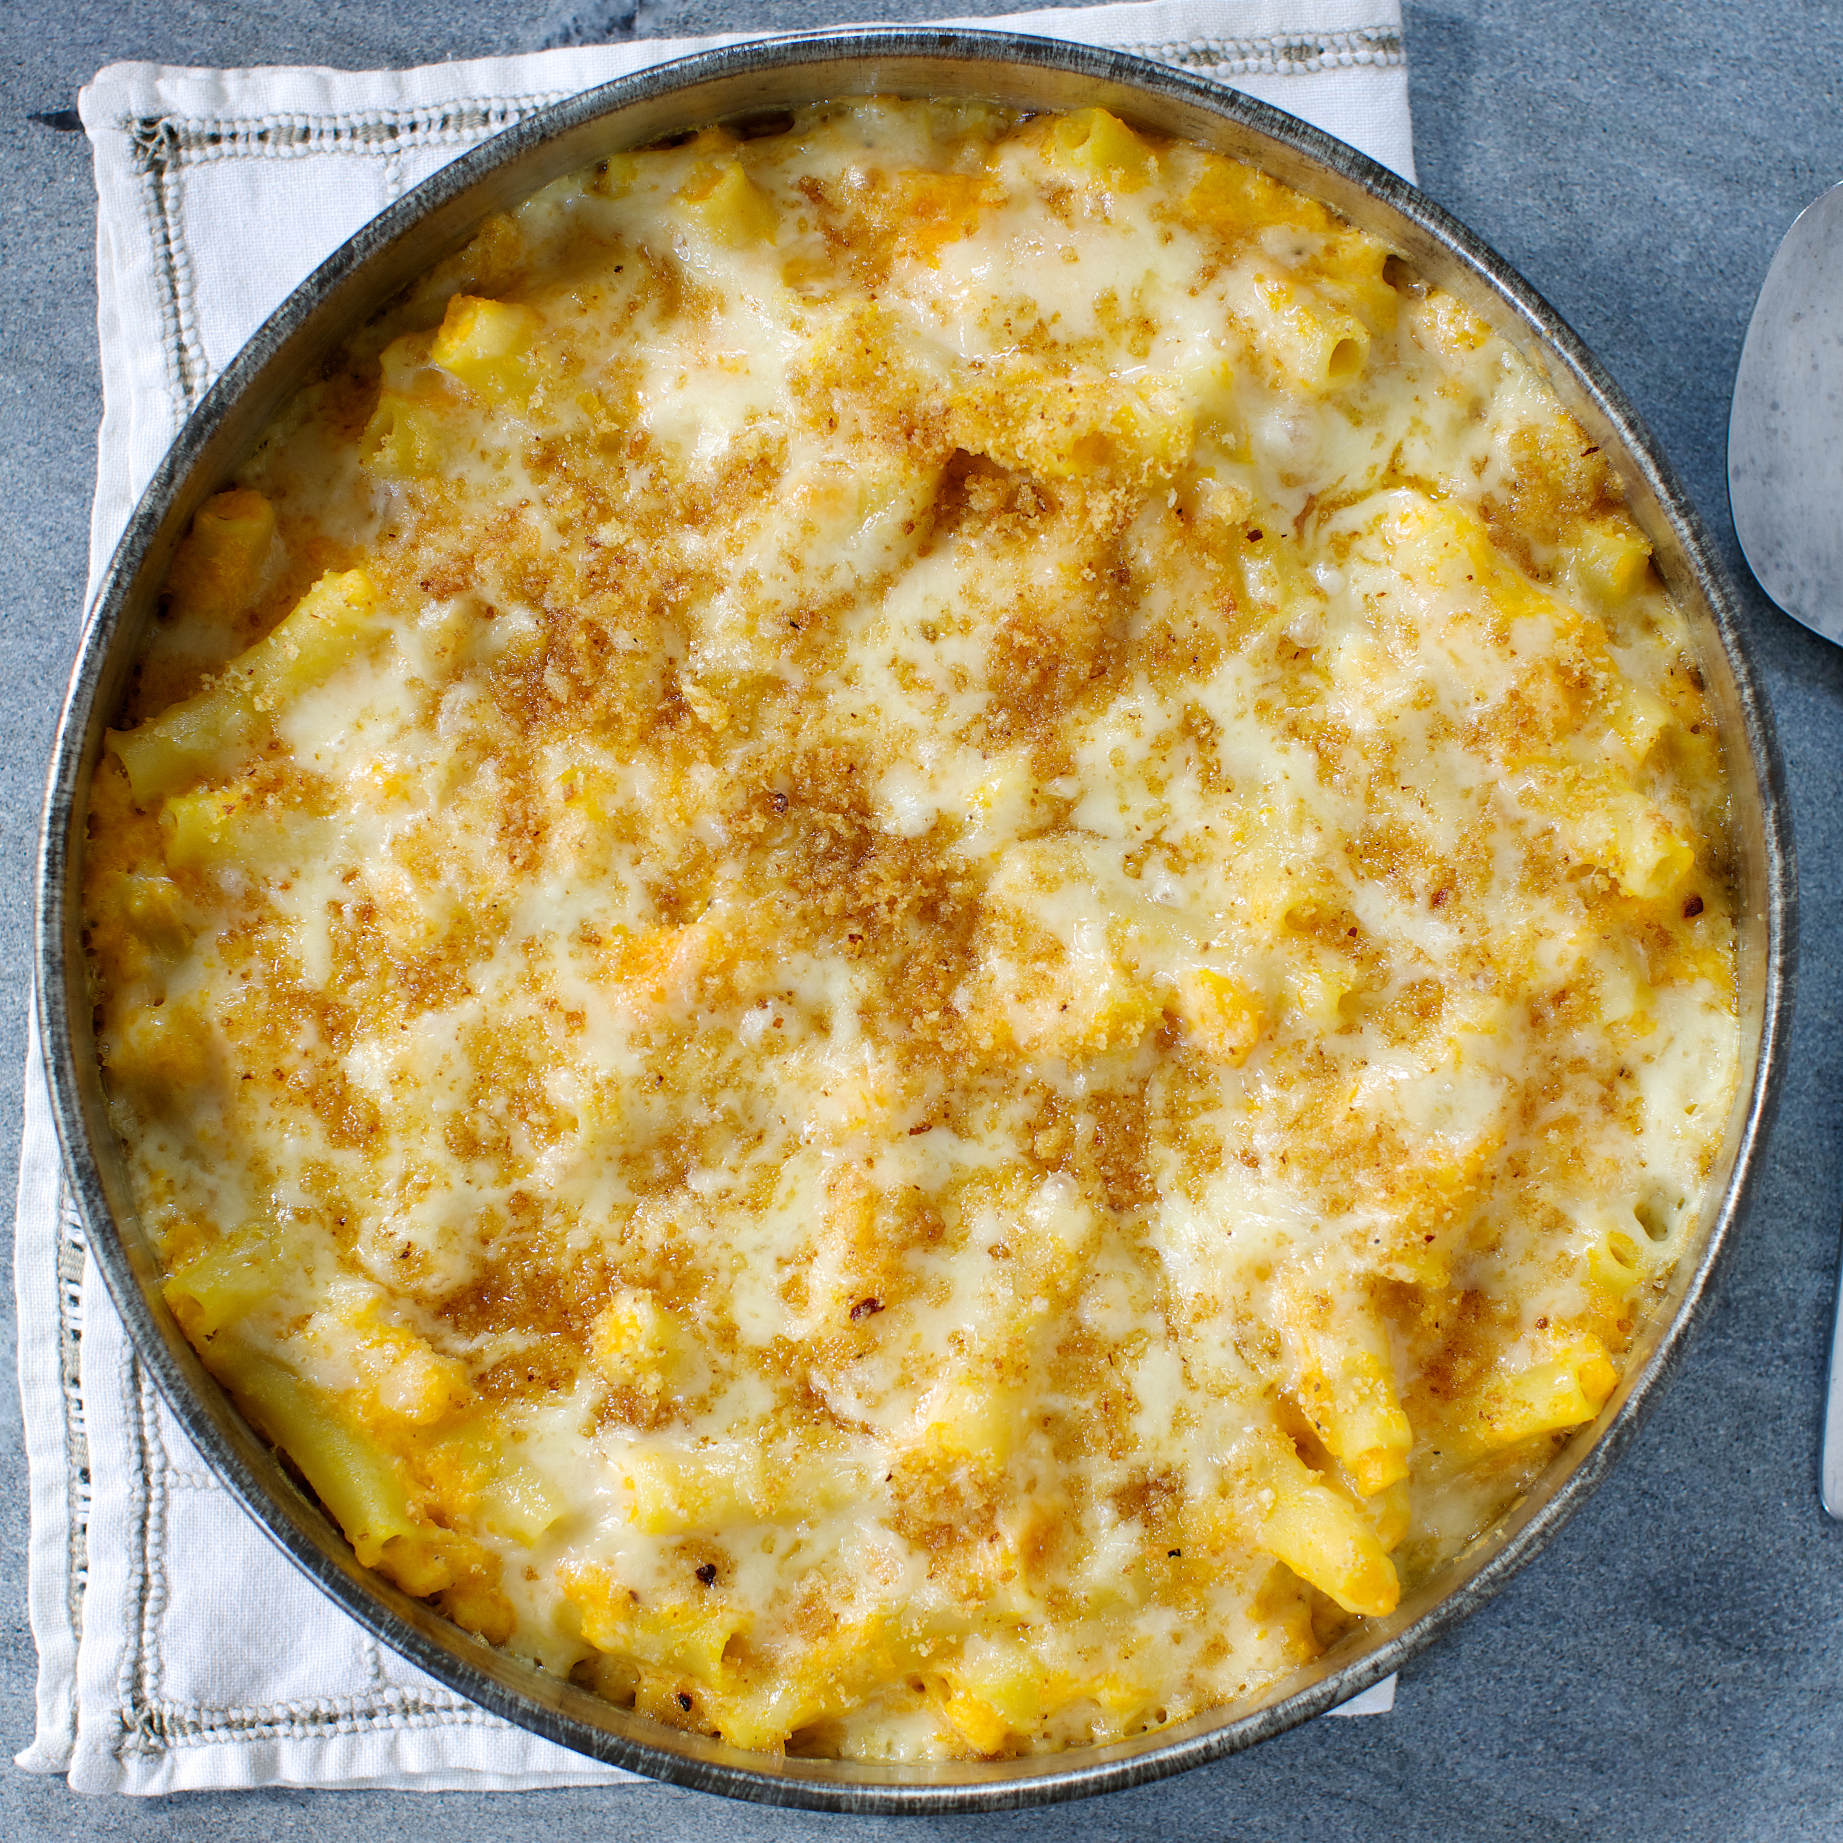 201408-r-golden-macaroni-and-cheese-with-butternut-squash-puree.jpg